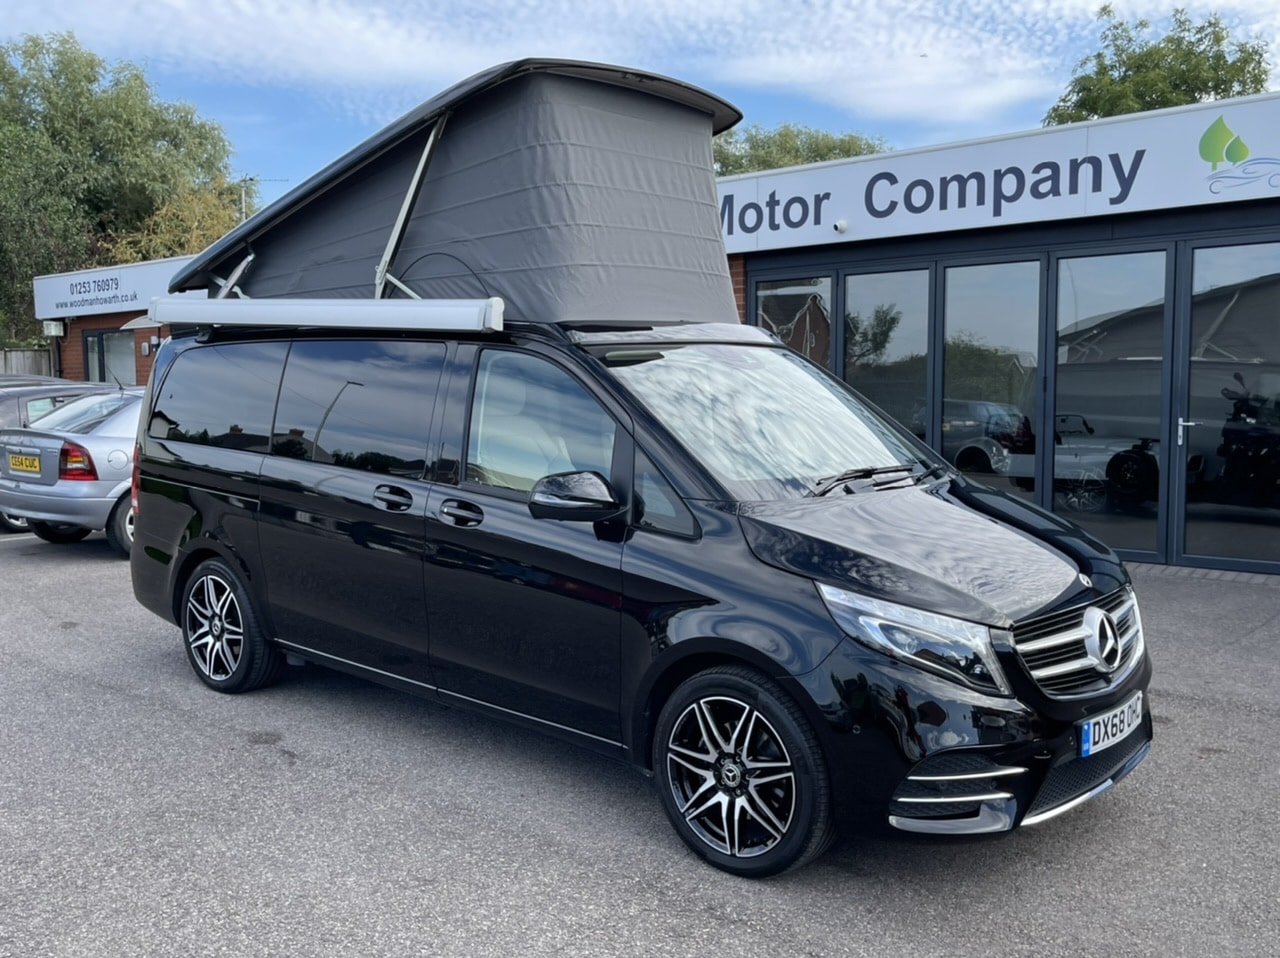 2018 68 MERCEDES BENZ V220D 163BHP MARCO POLO AMG LINE 9G-TRONIC AUTO CAMPER VAN - Aux air heater - 360 Cameras - Awning - COMAND - Towbar